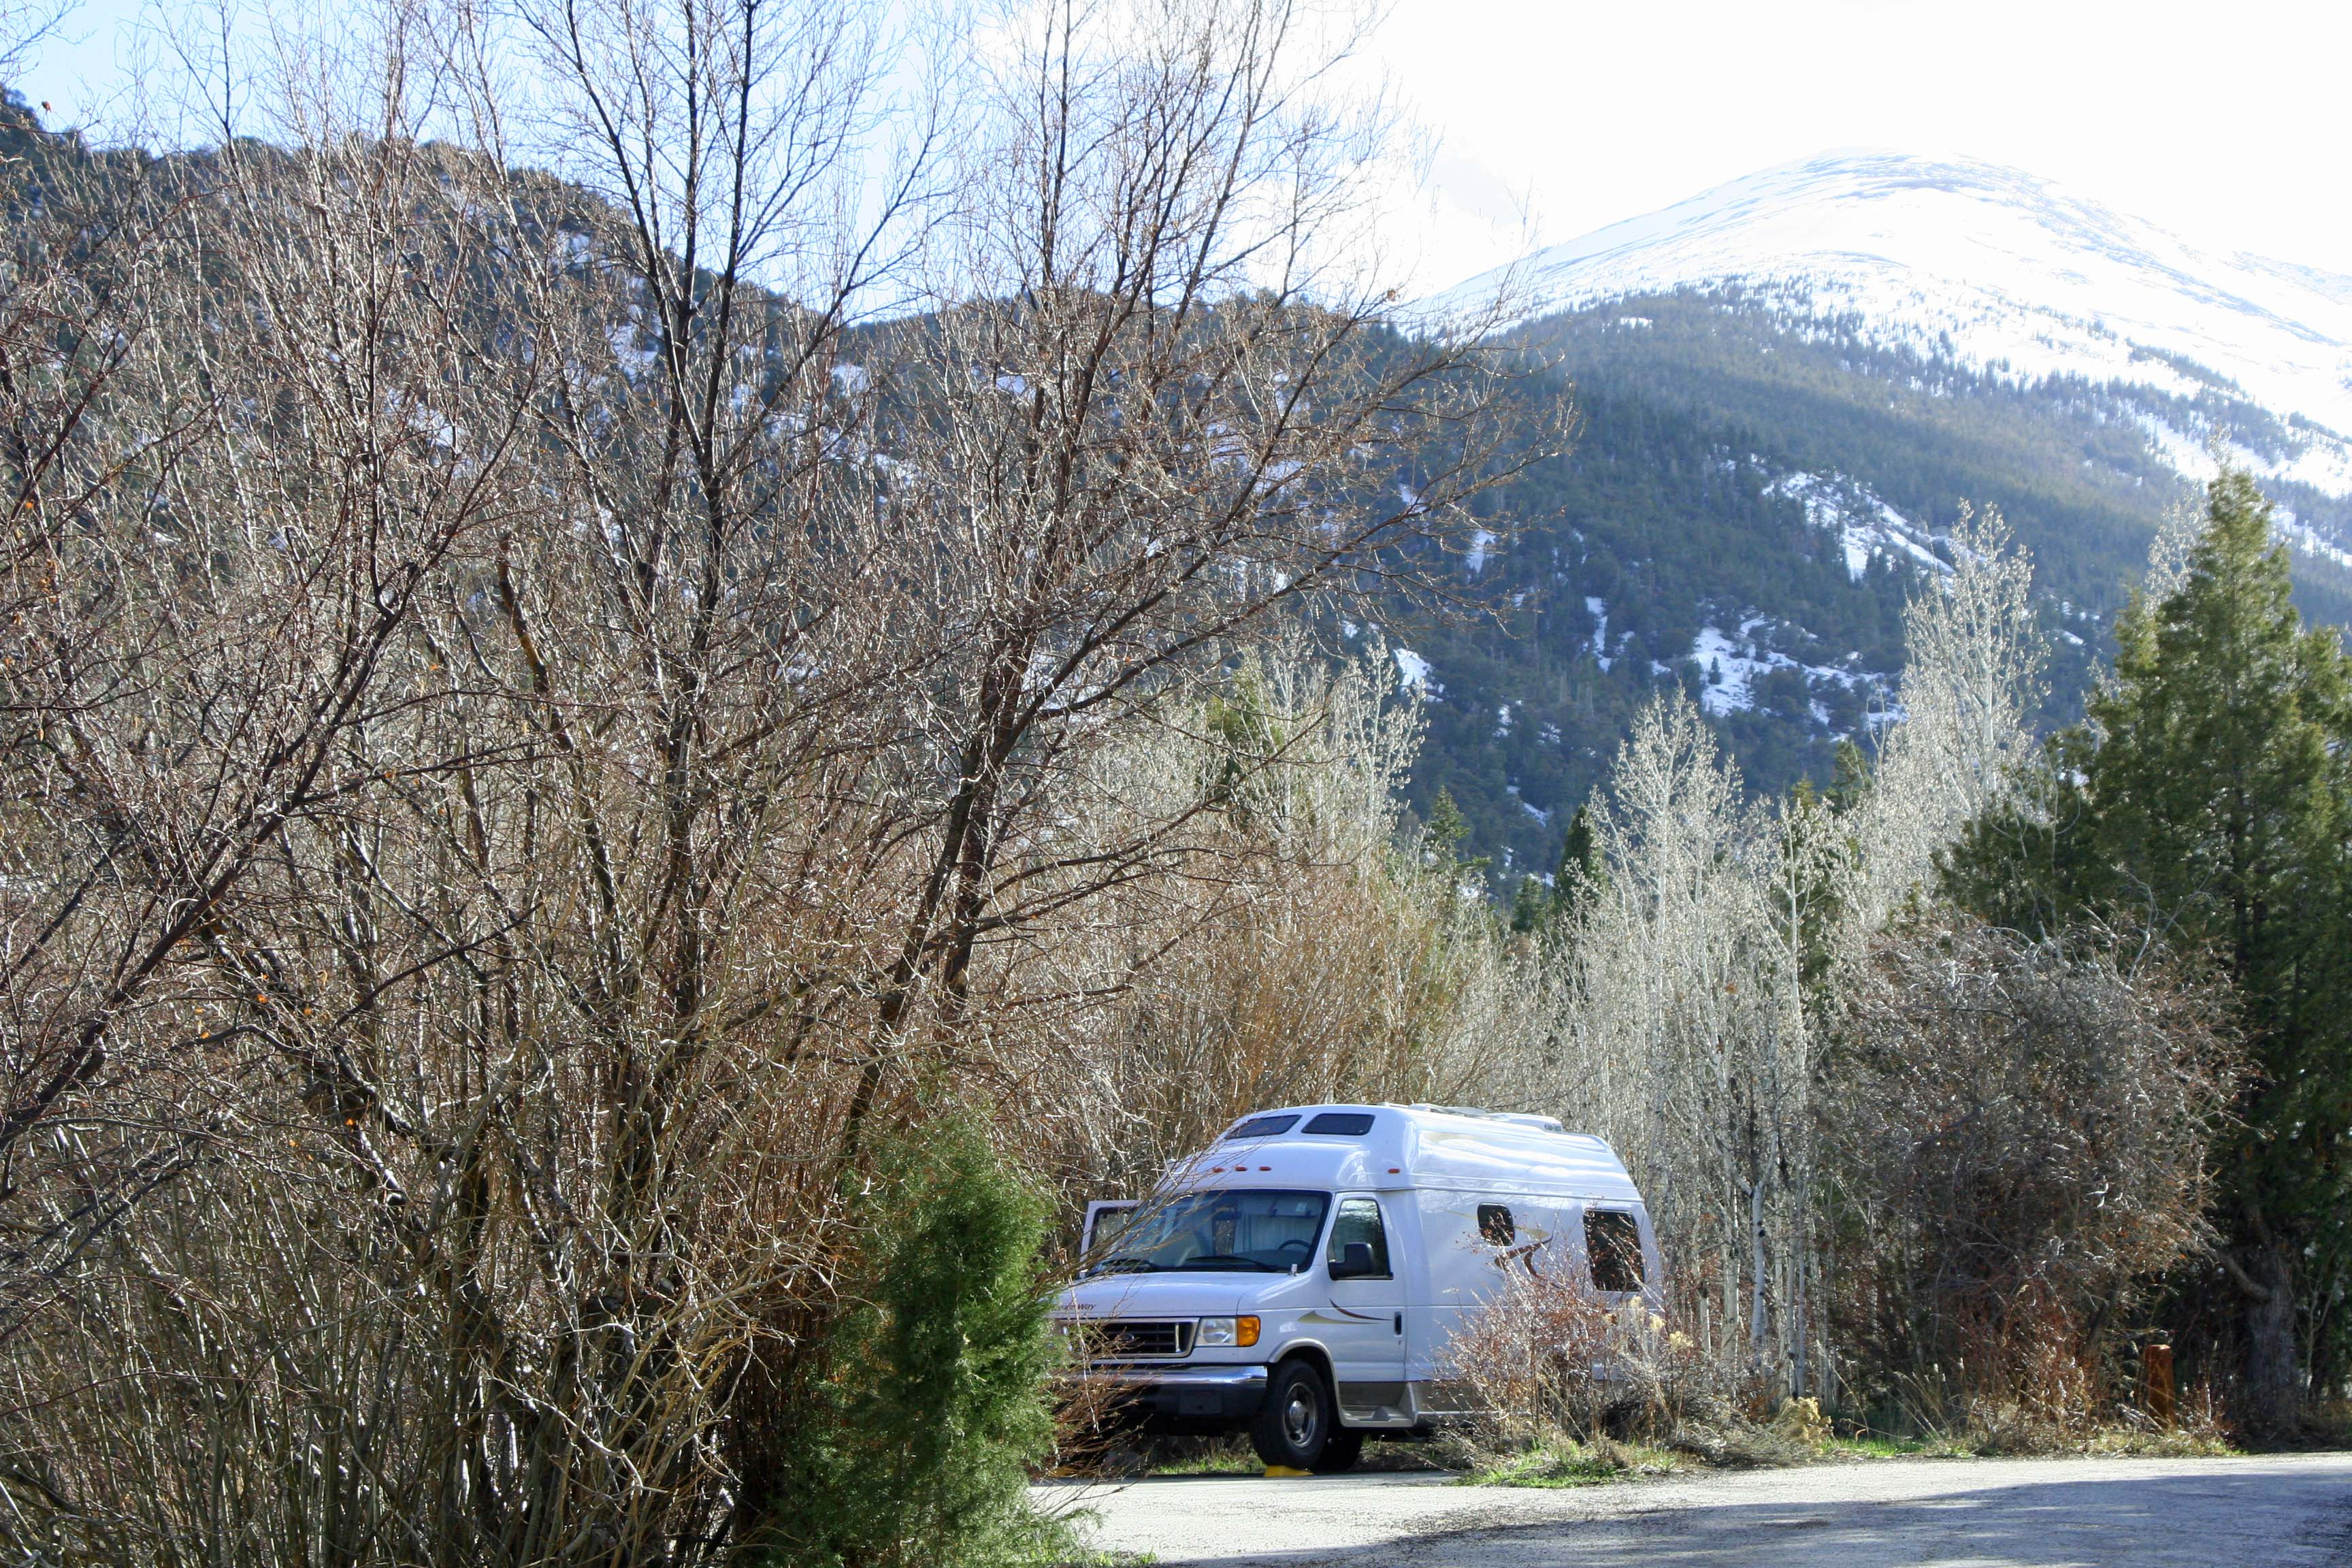 Lesser known National Parks such as Great Basin in Nevada also hold great charm and beauty. This photo features the van Peggy  and I travelled in for four years as we travelled around North America.